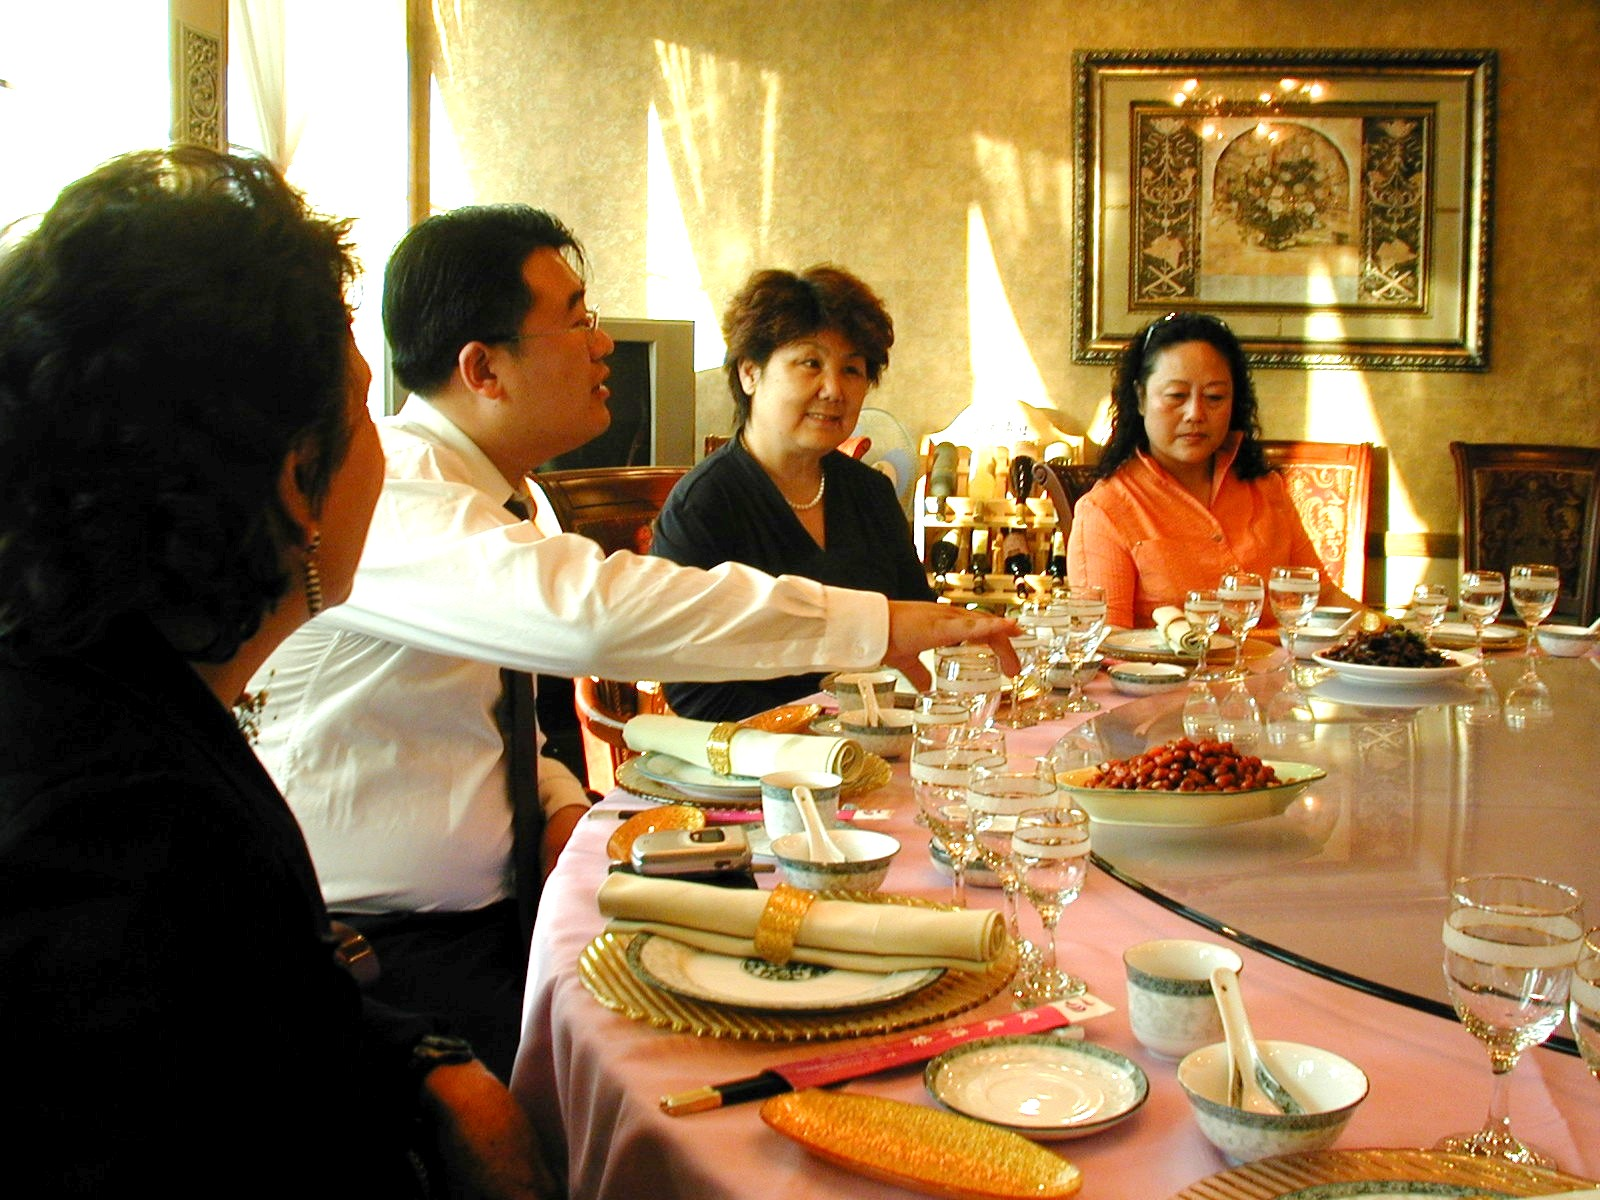 Copy of Copy of Banquet after workshop in Qingdao